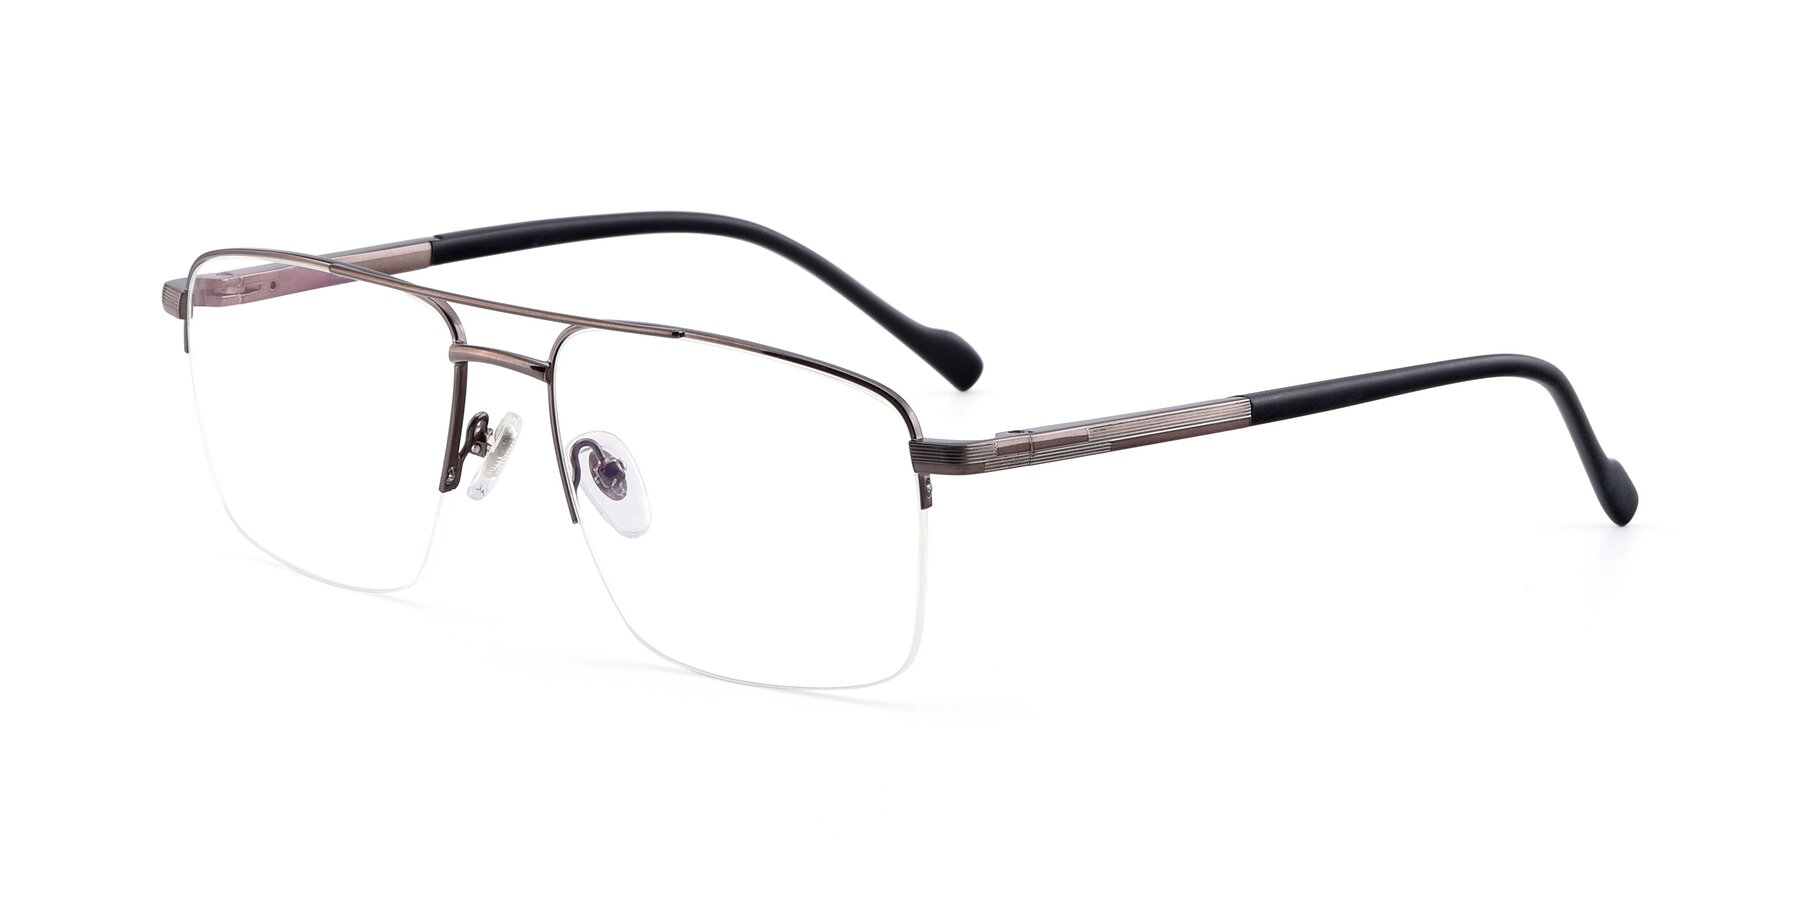 Angle of 19013 in Gunmetal with Clear Blue Light Blocking Lenses